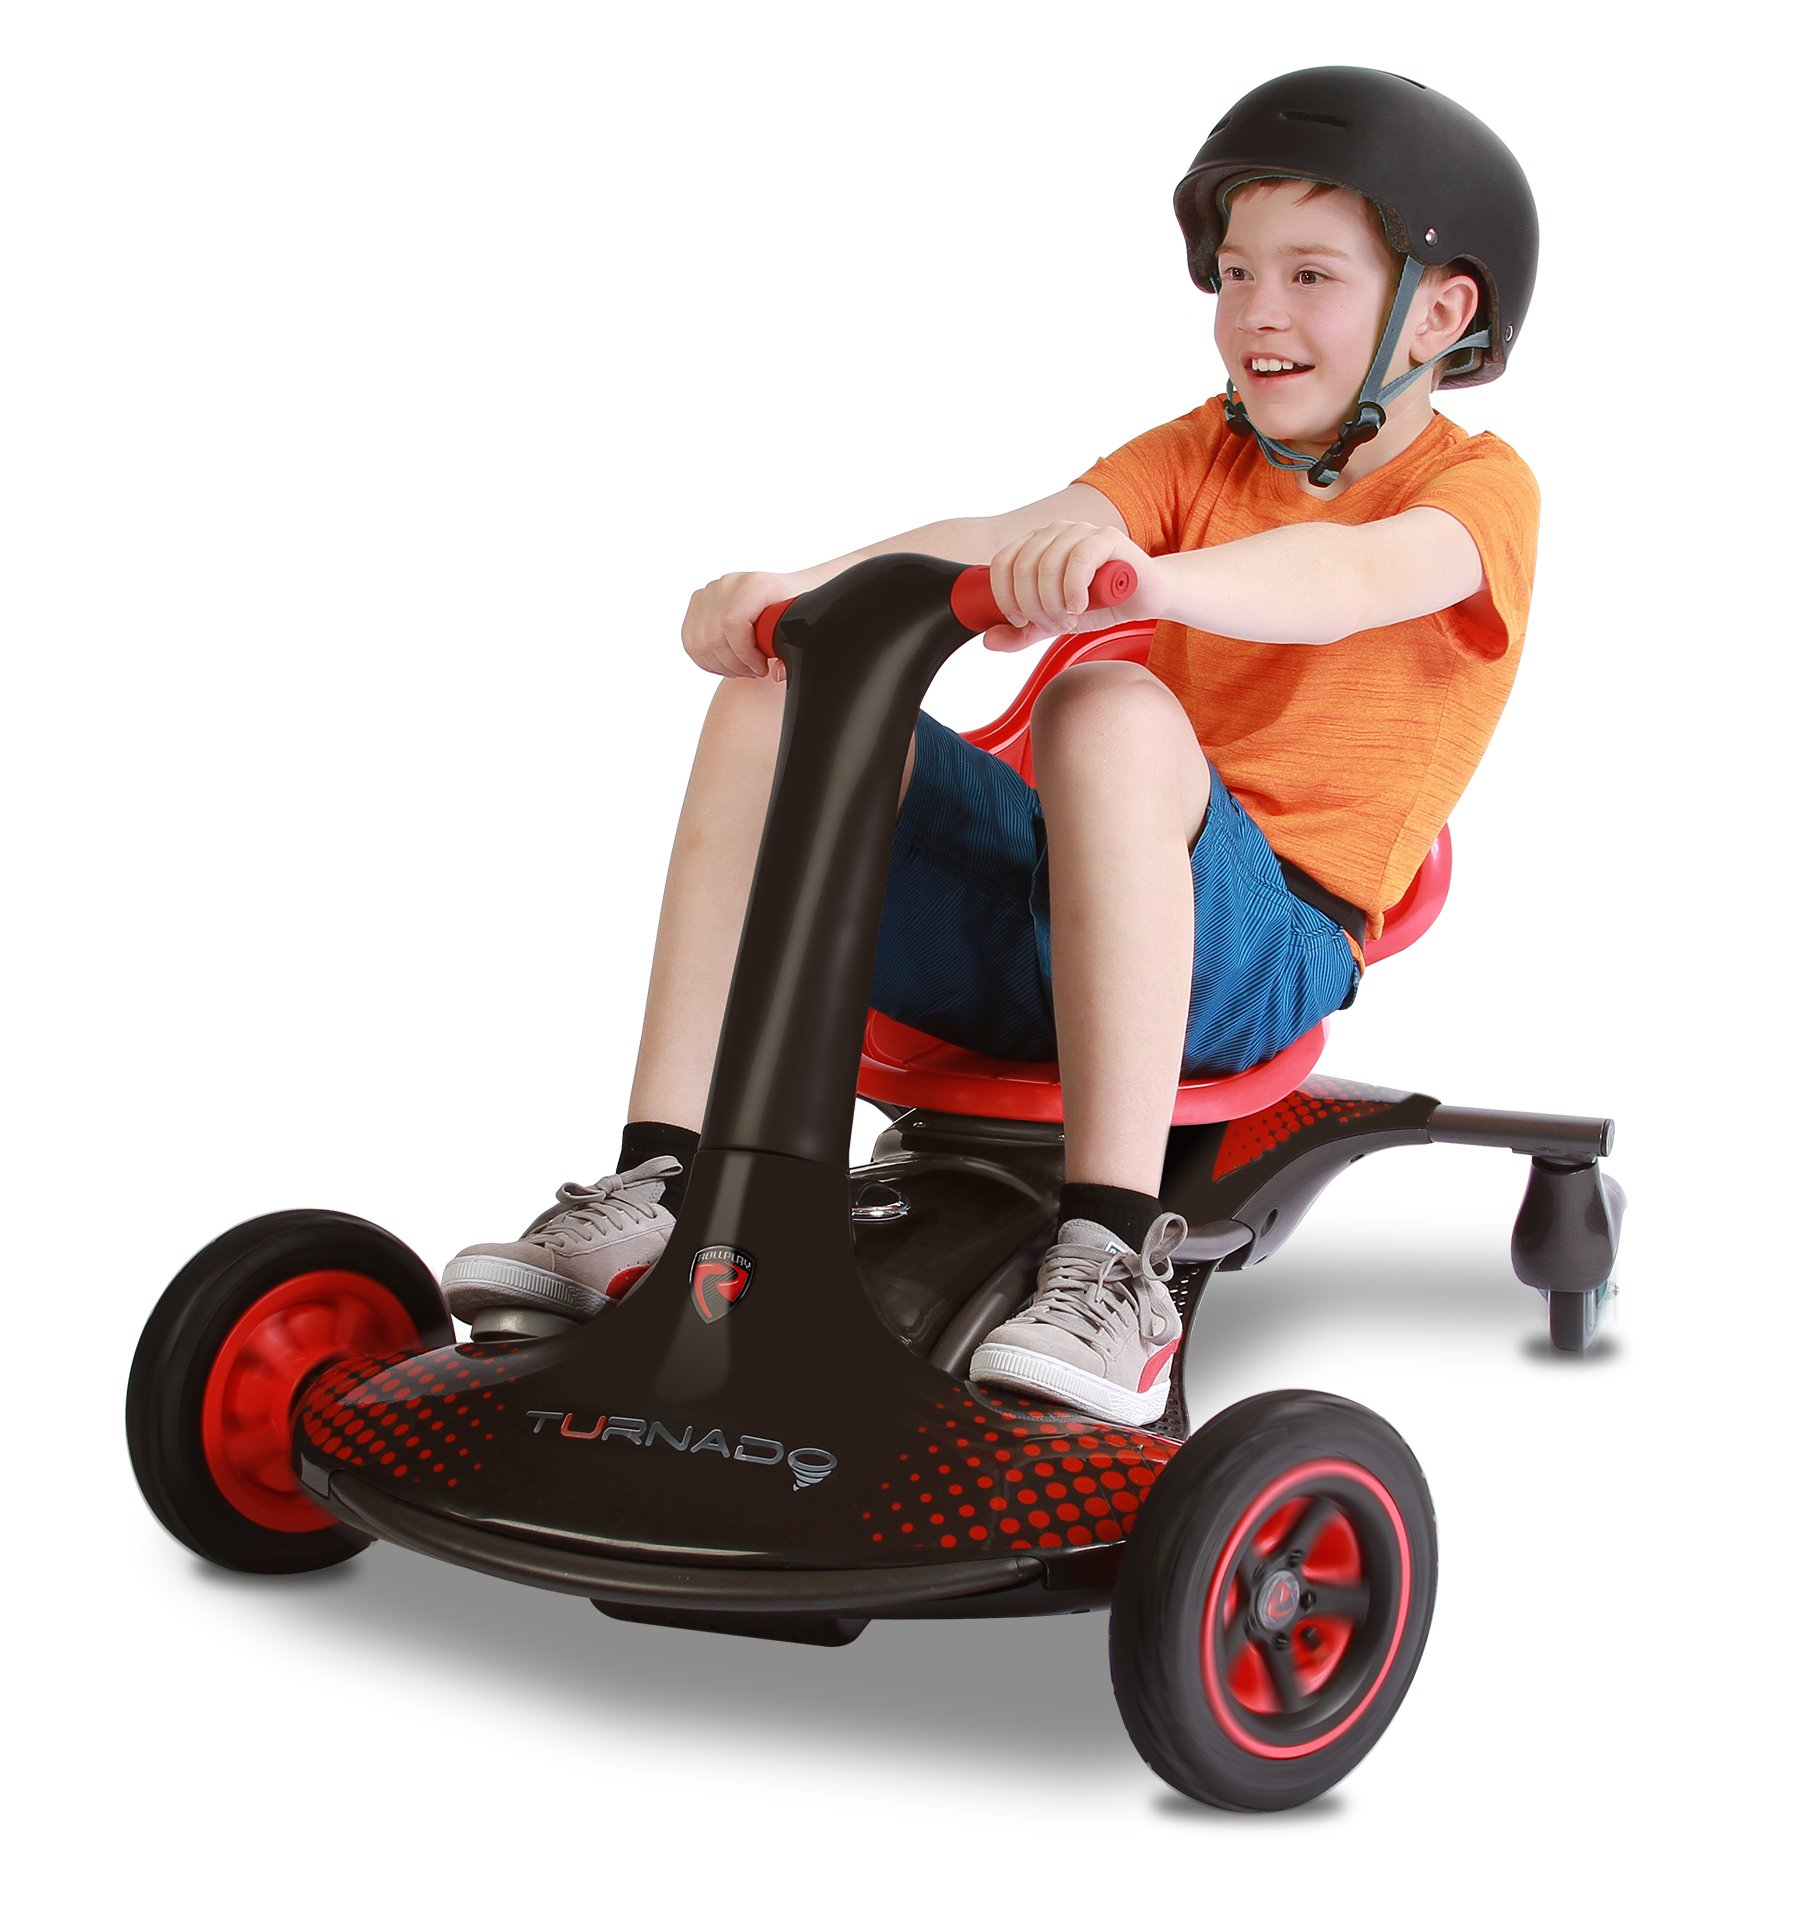 Rollplay Turnado 24-Volt Battery-Powered Ride-On by Rollplay